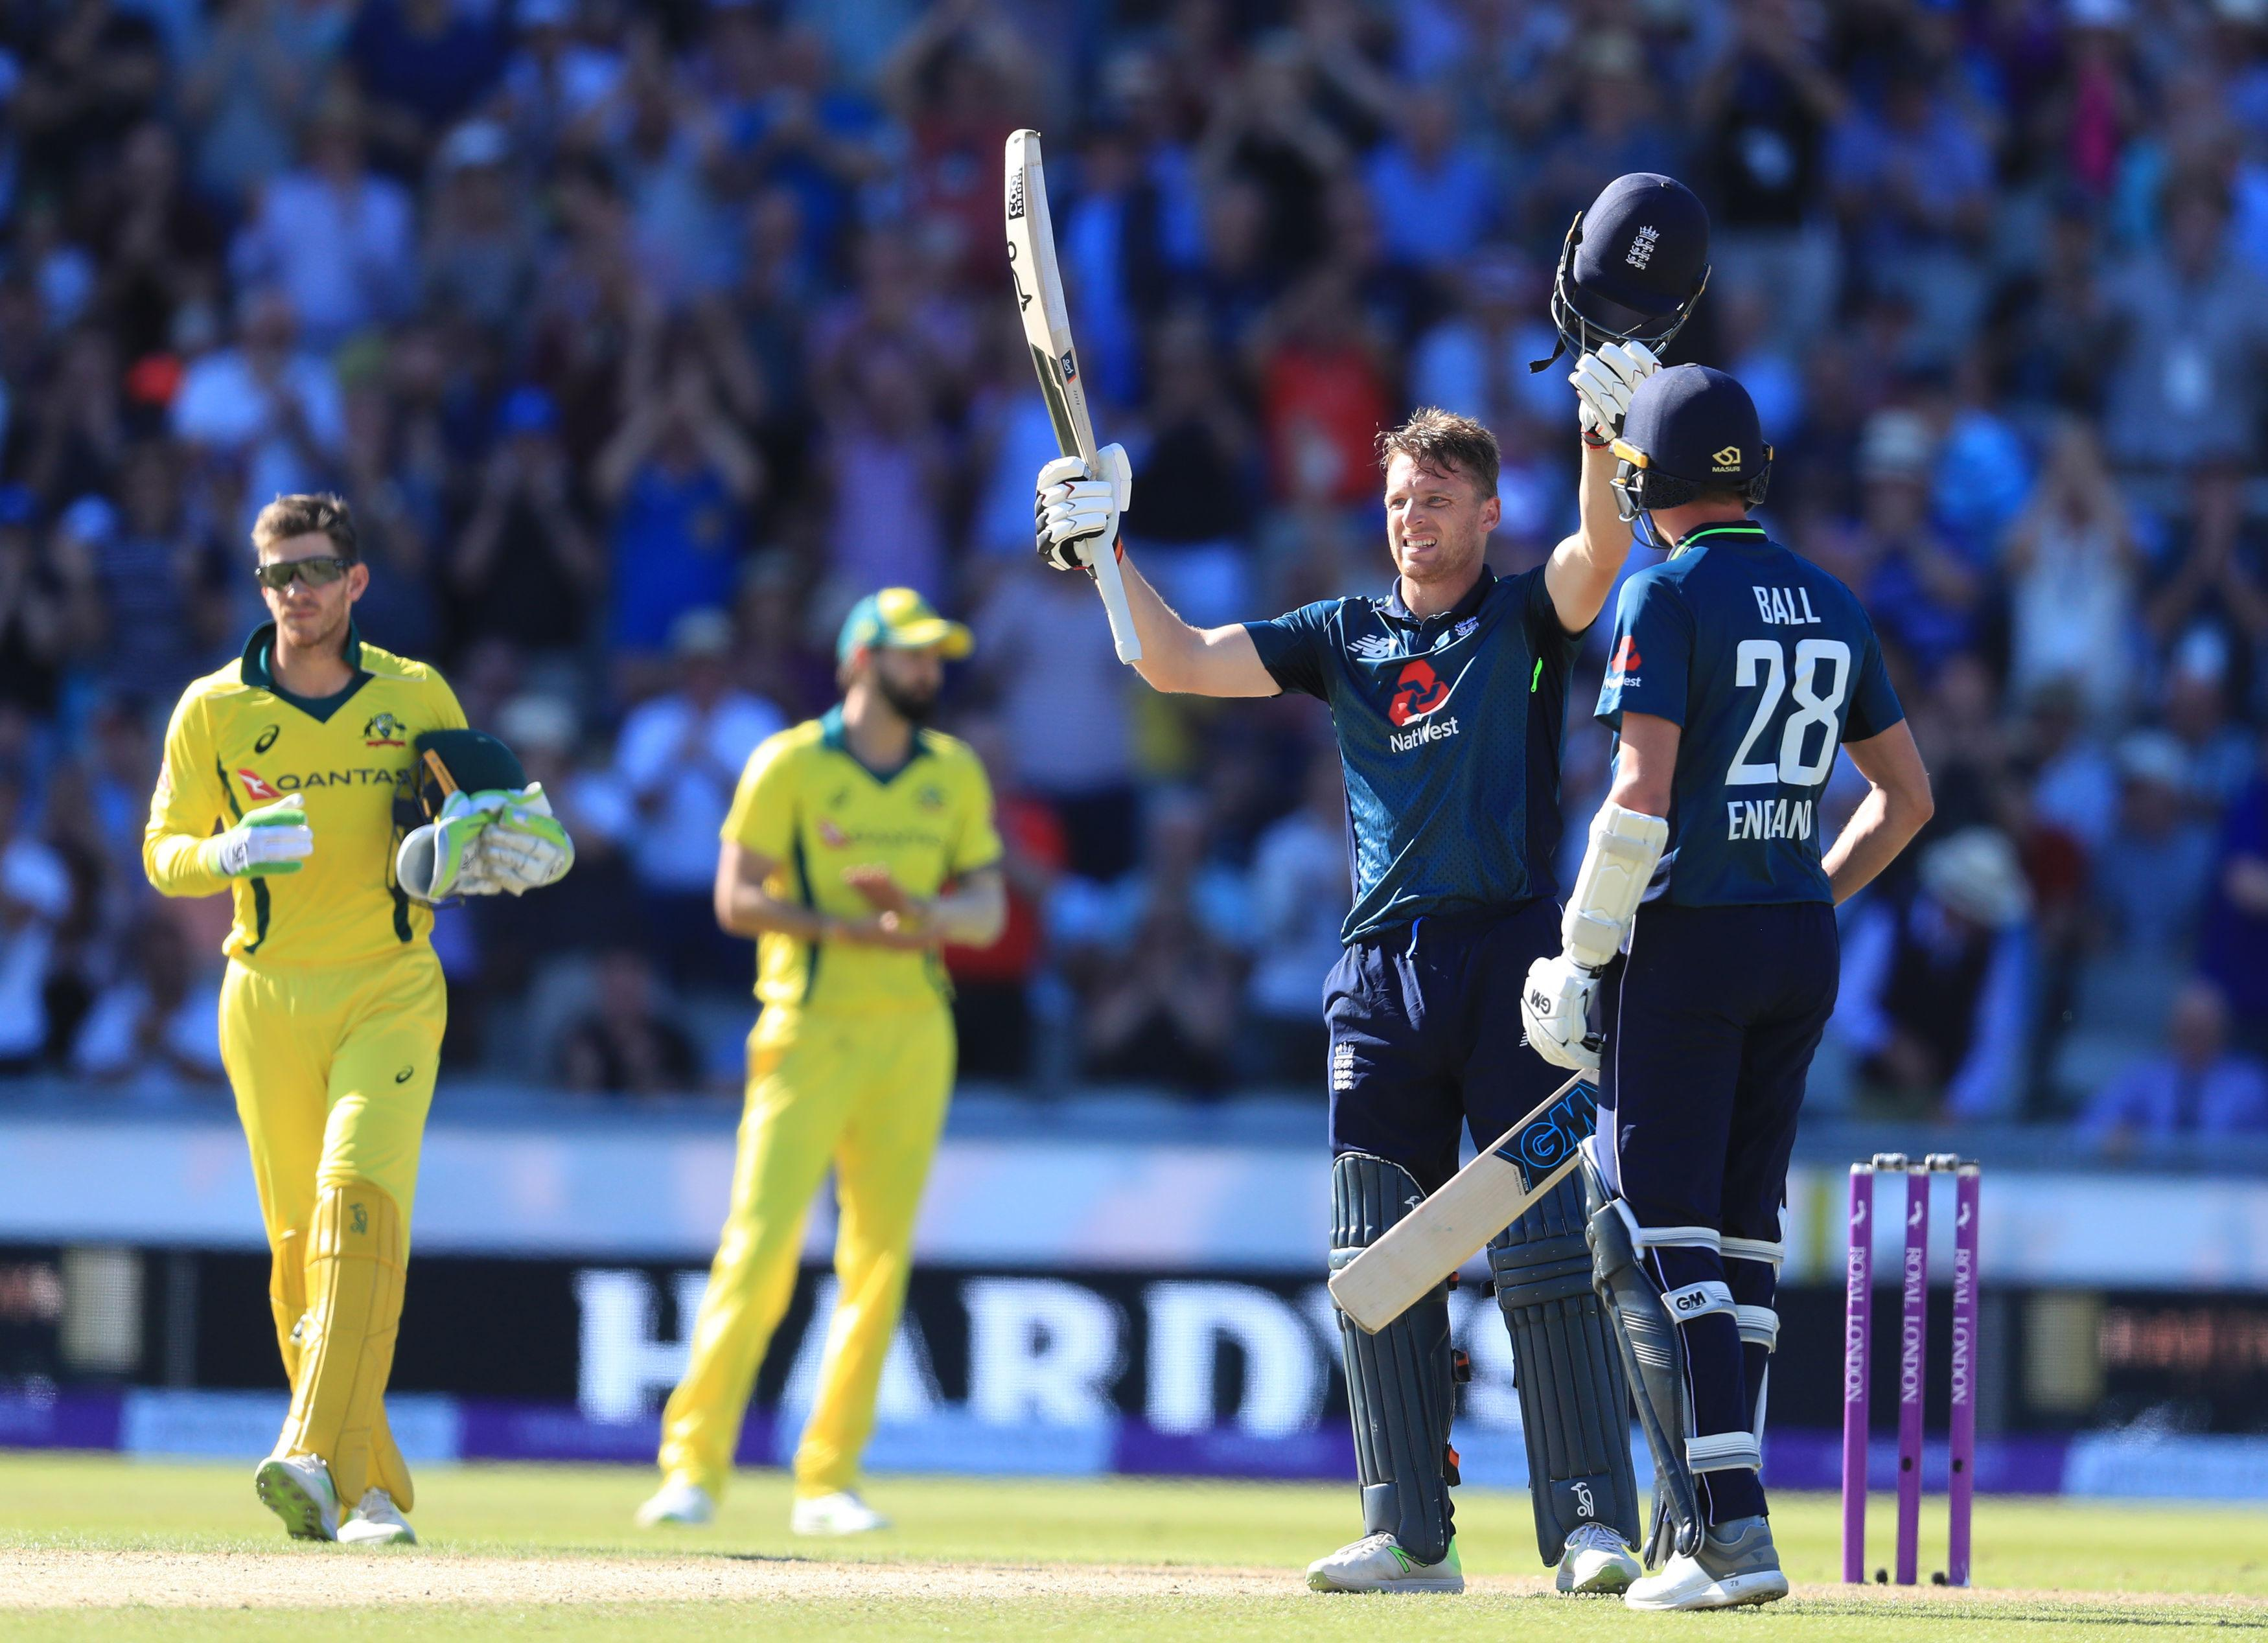 Buttler was the only England player to pass 20 as they struggled against Australia's pace attack